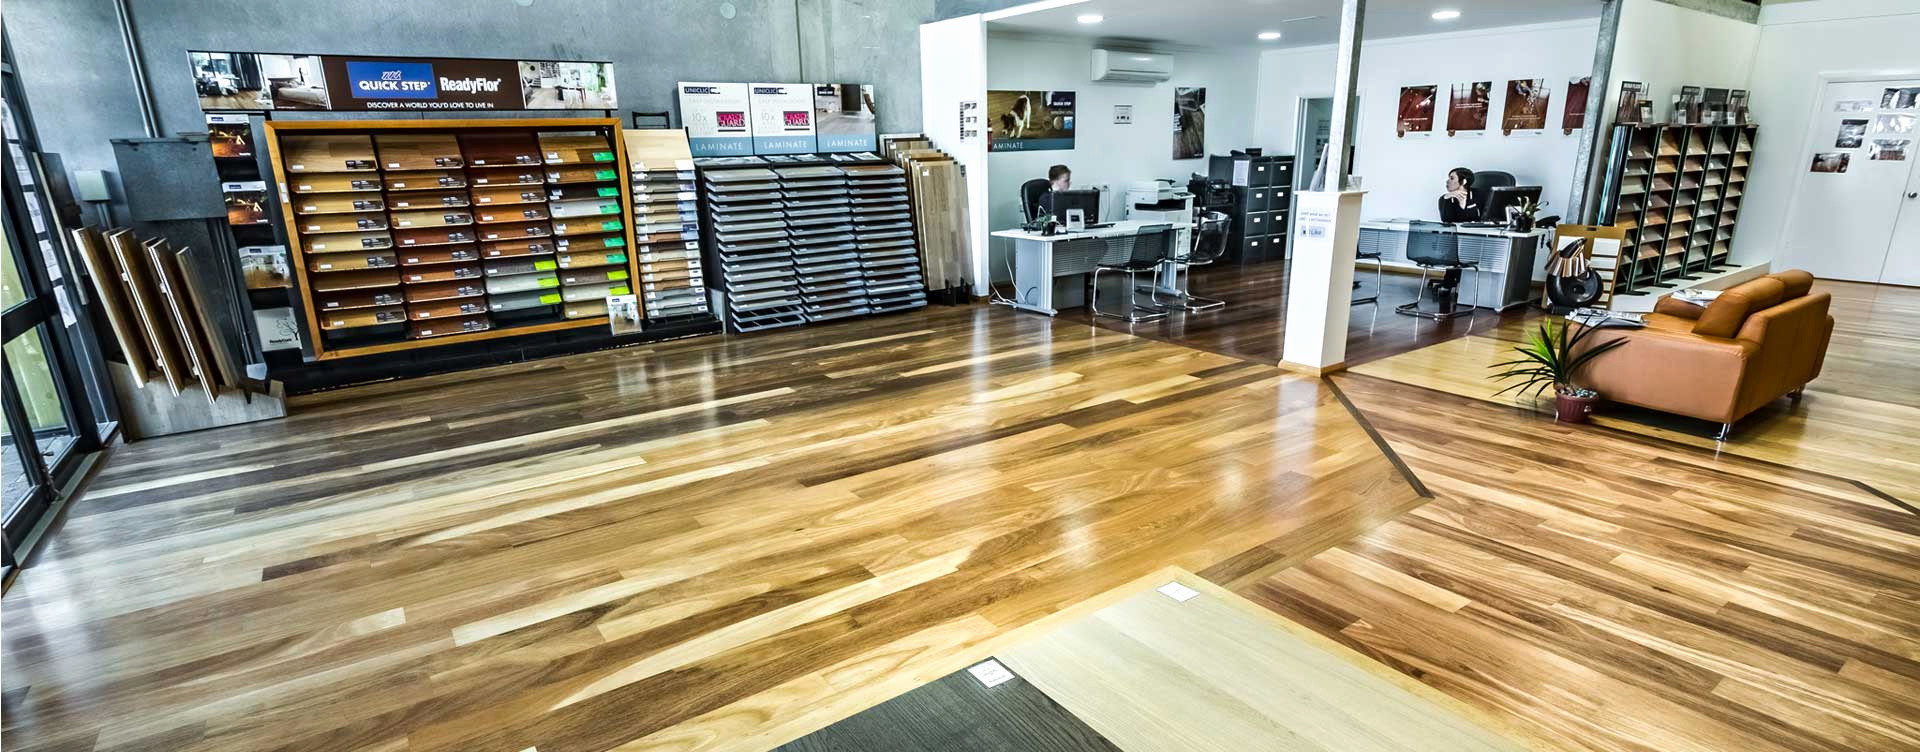 23 spectacular pictures of cupping hardwood floors